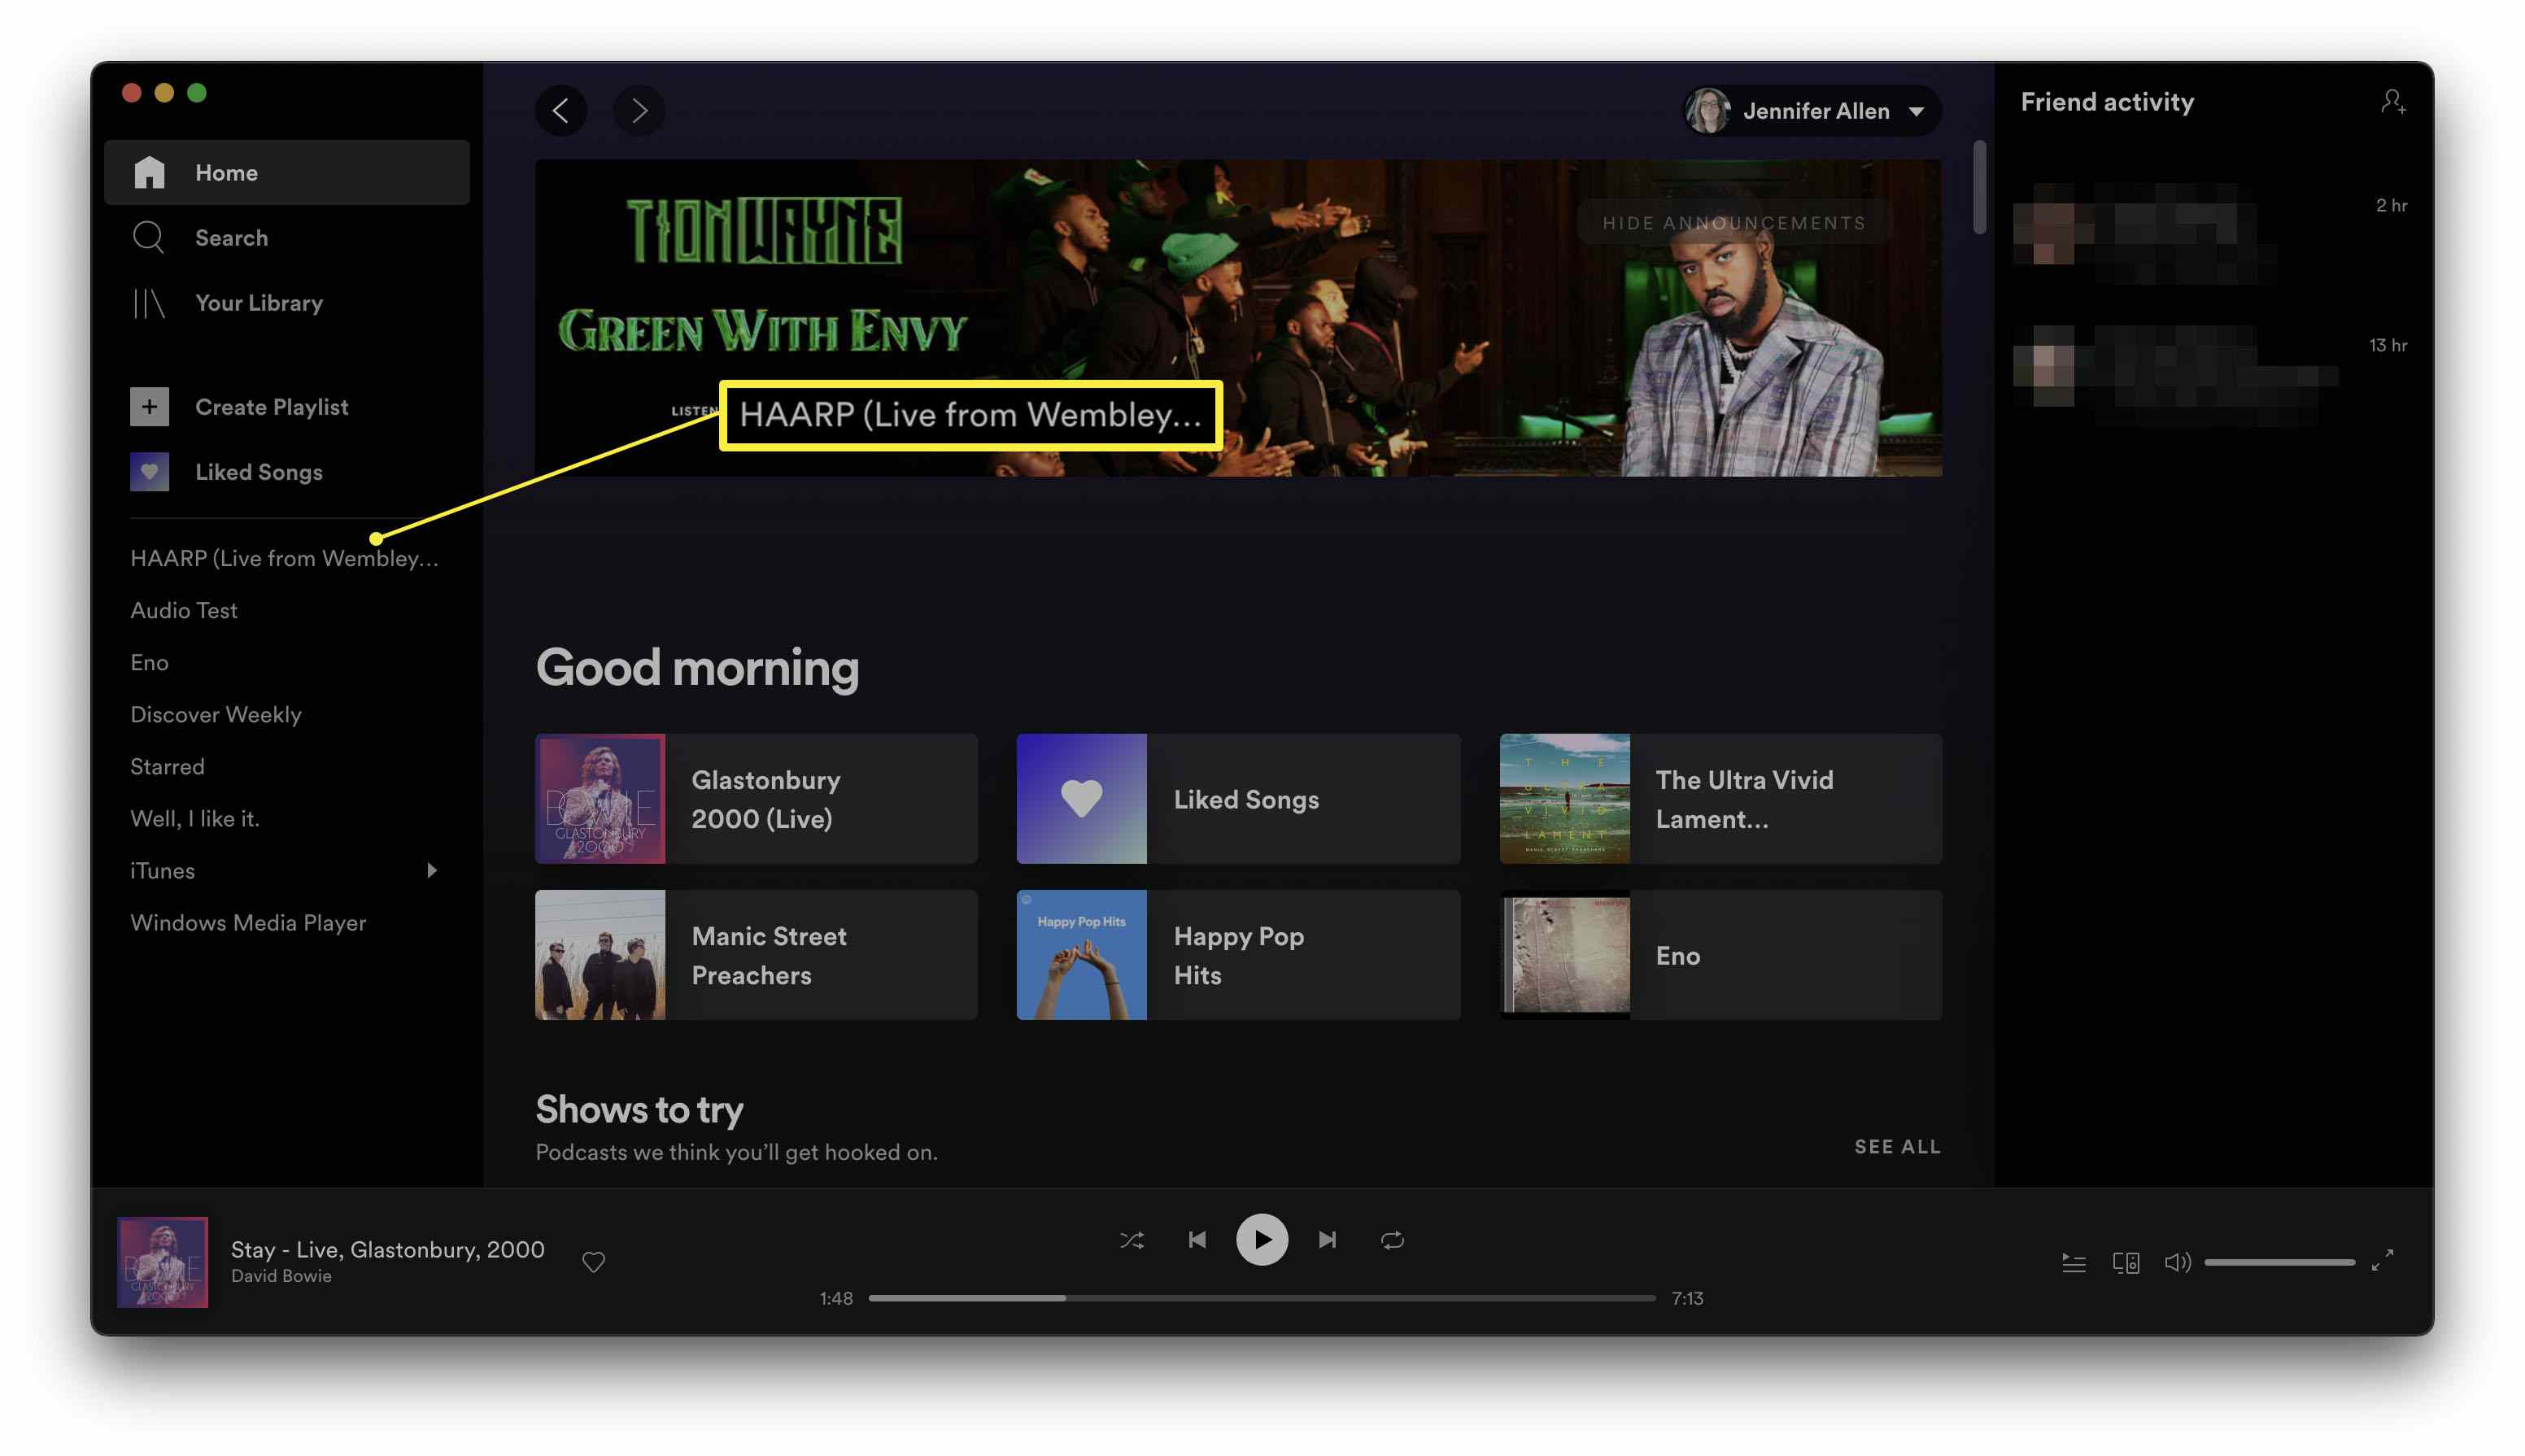 Spotify with a playlist highlighted